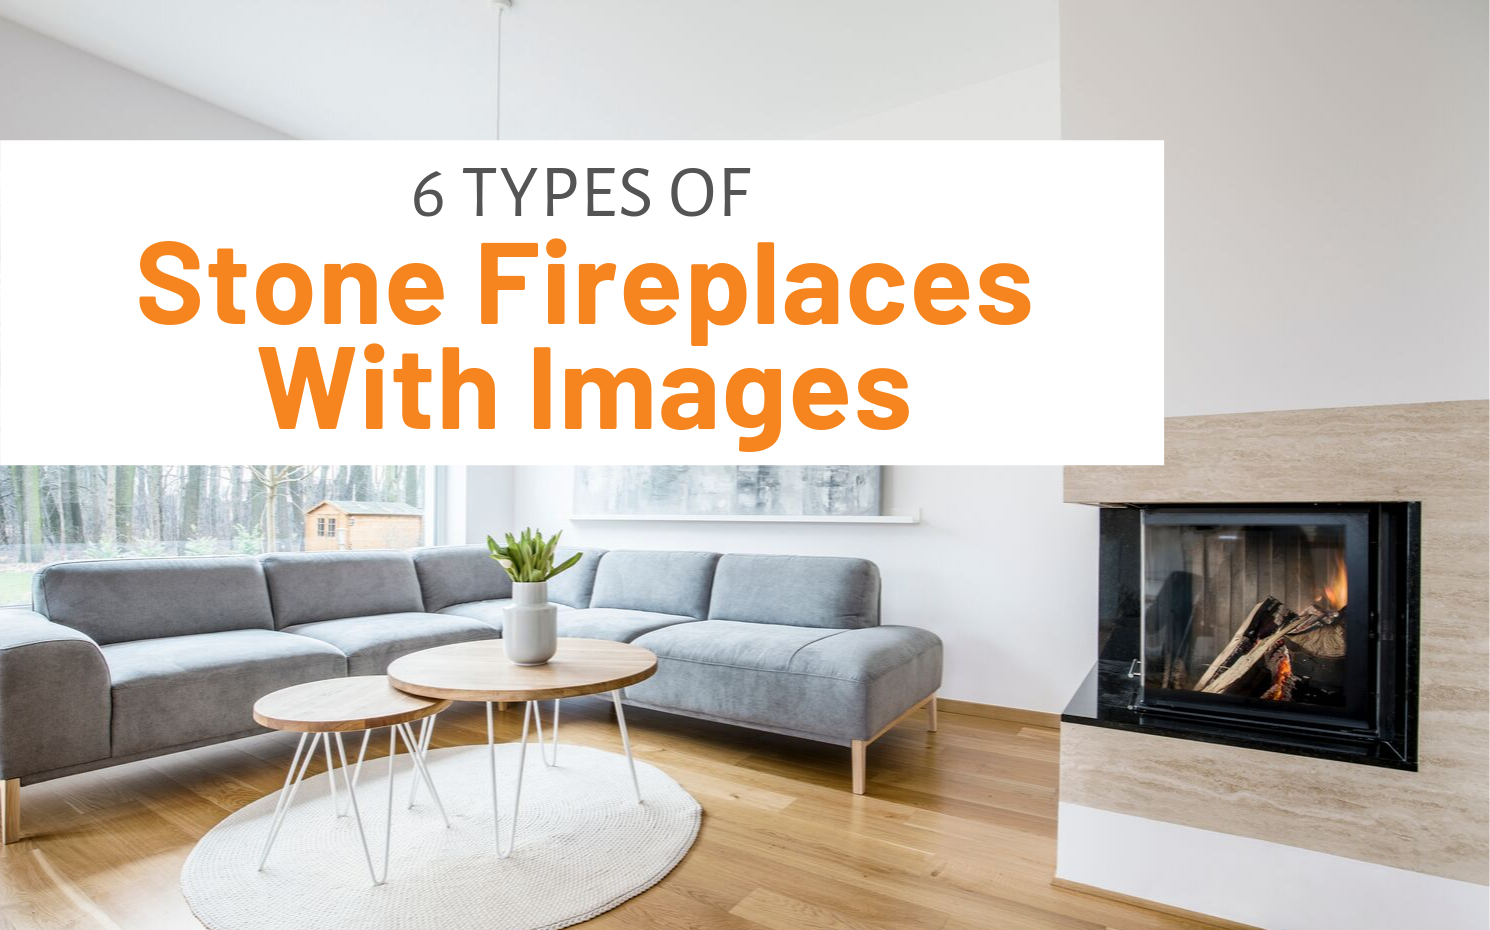 6 Types Of Stone Fireplaces With Images Stone Specialists Inc